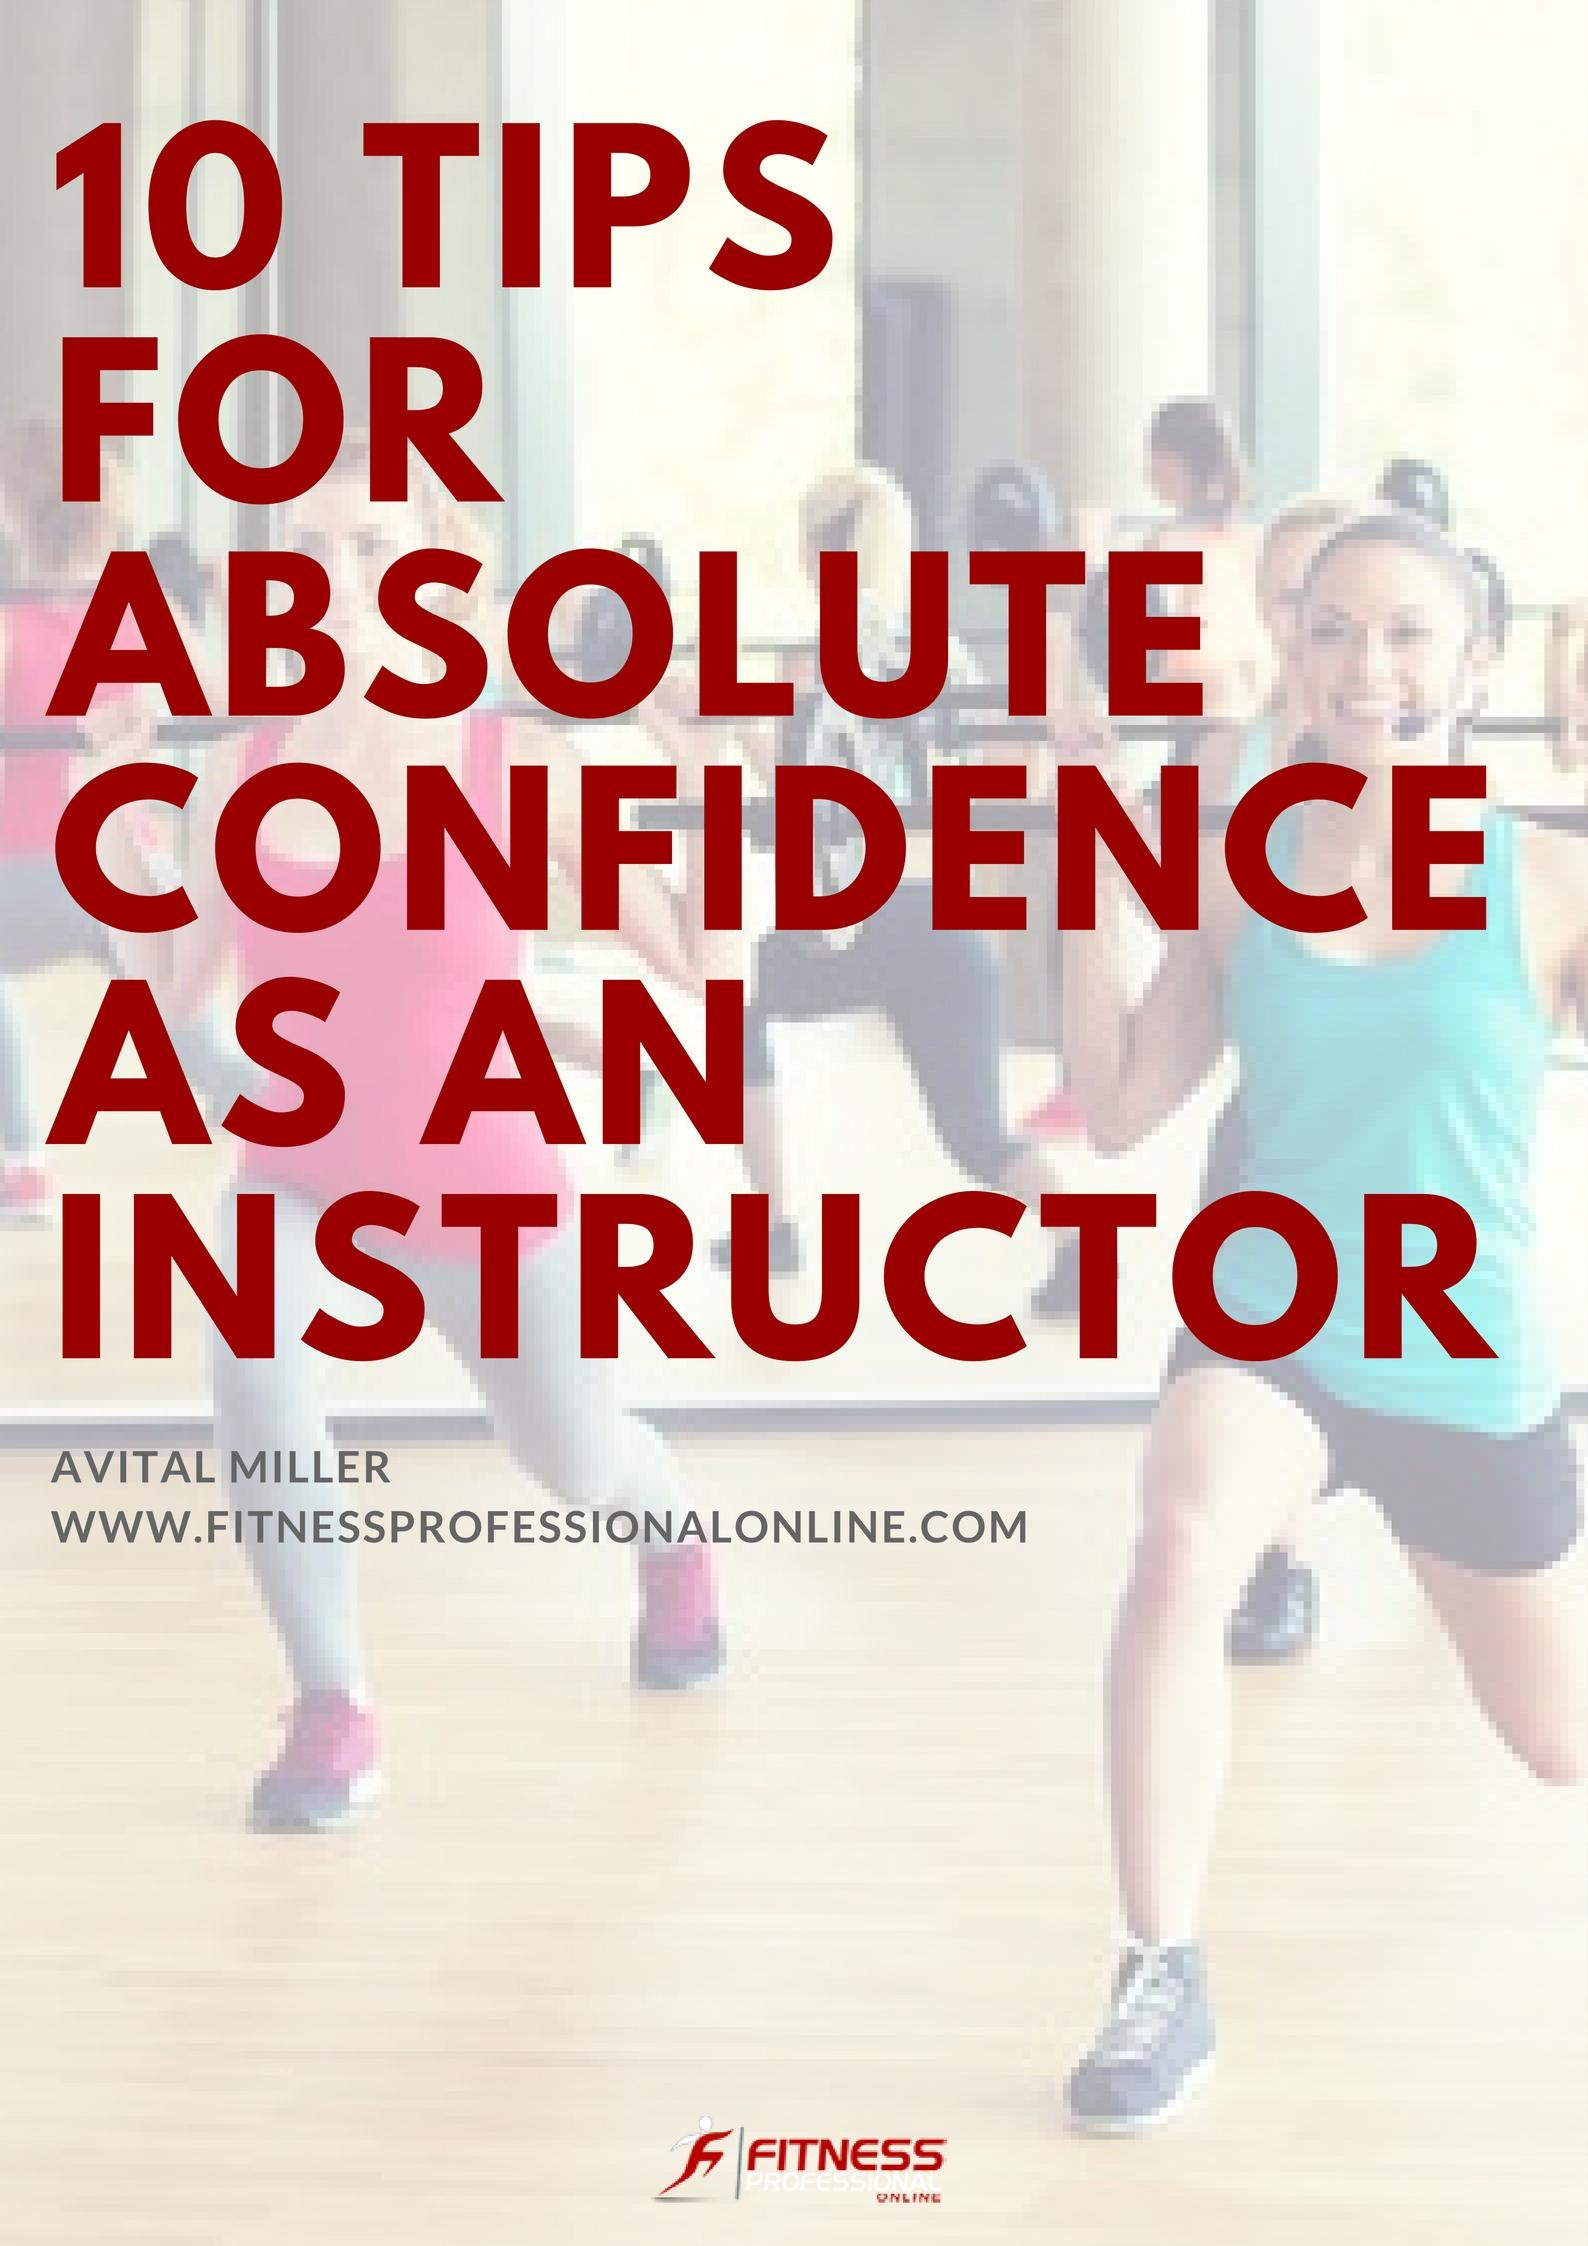 Whether you are just starting out or are an experienced instructor, here are 10 ways in which you can instill confidence in yourself as a personal instructor.